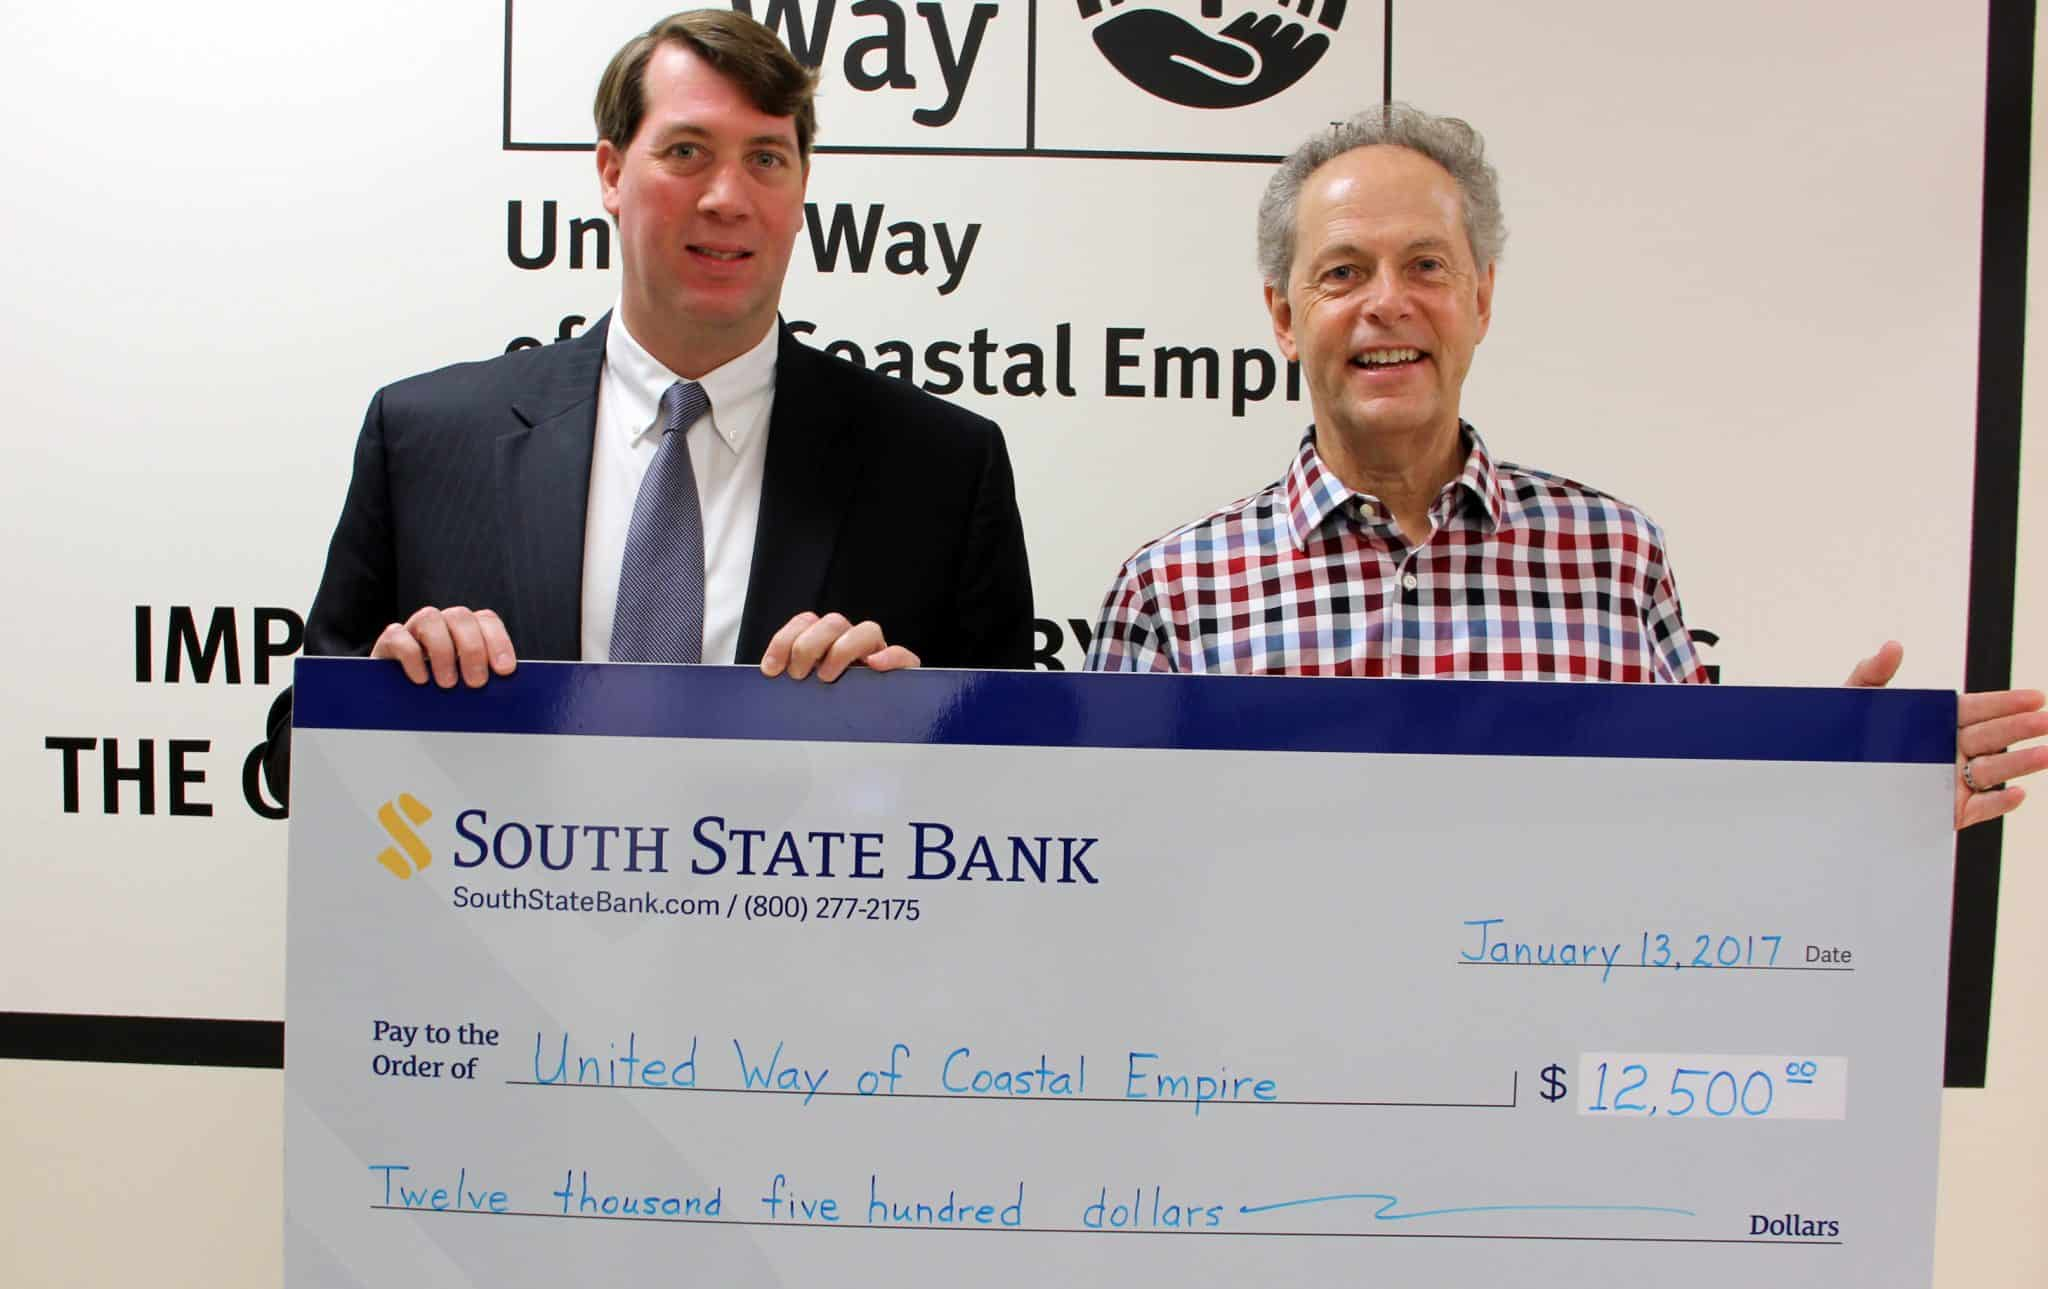 UWCE Receives $12,500 From South State Bank To Help Hurricane Matthew Relief Effort